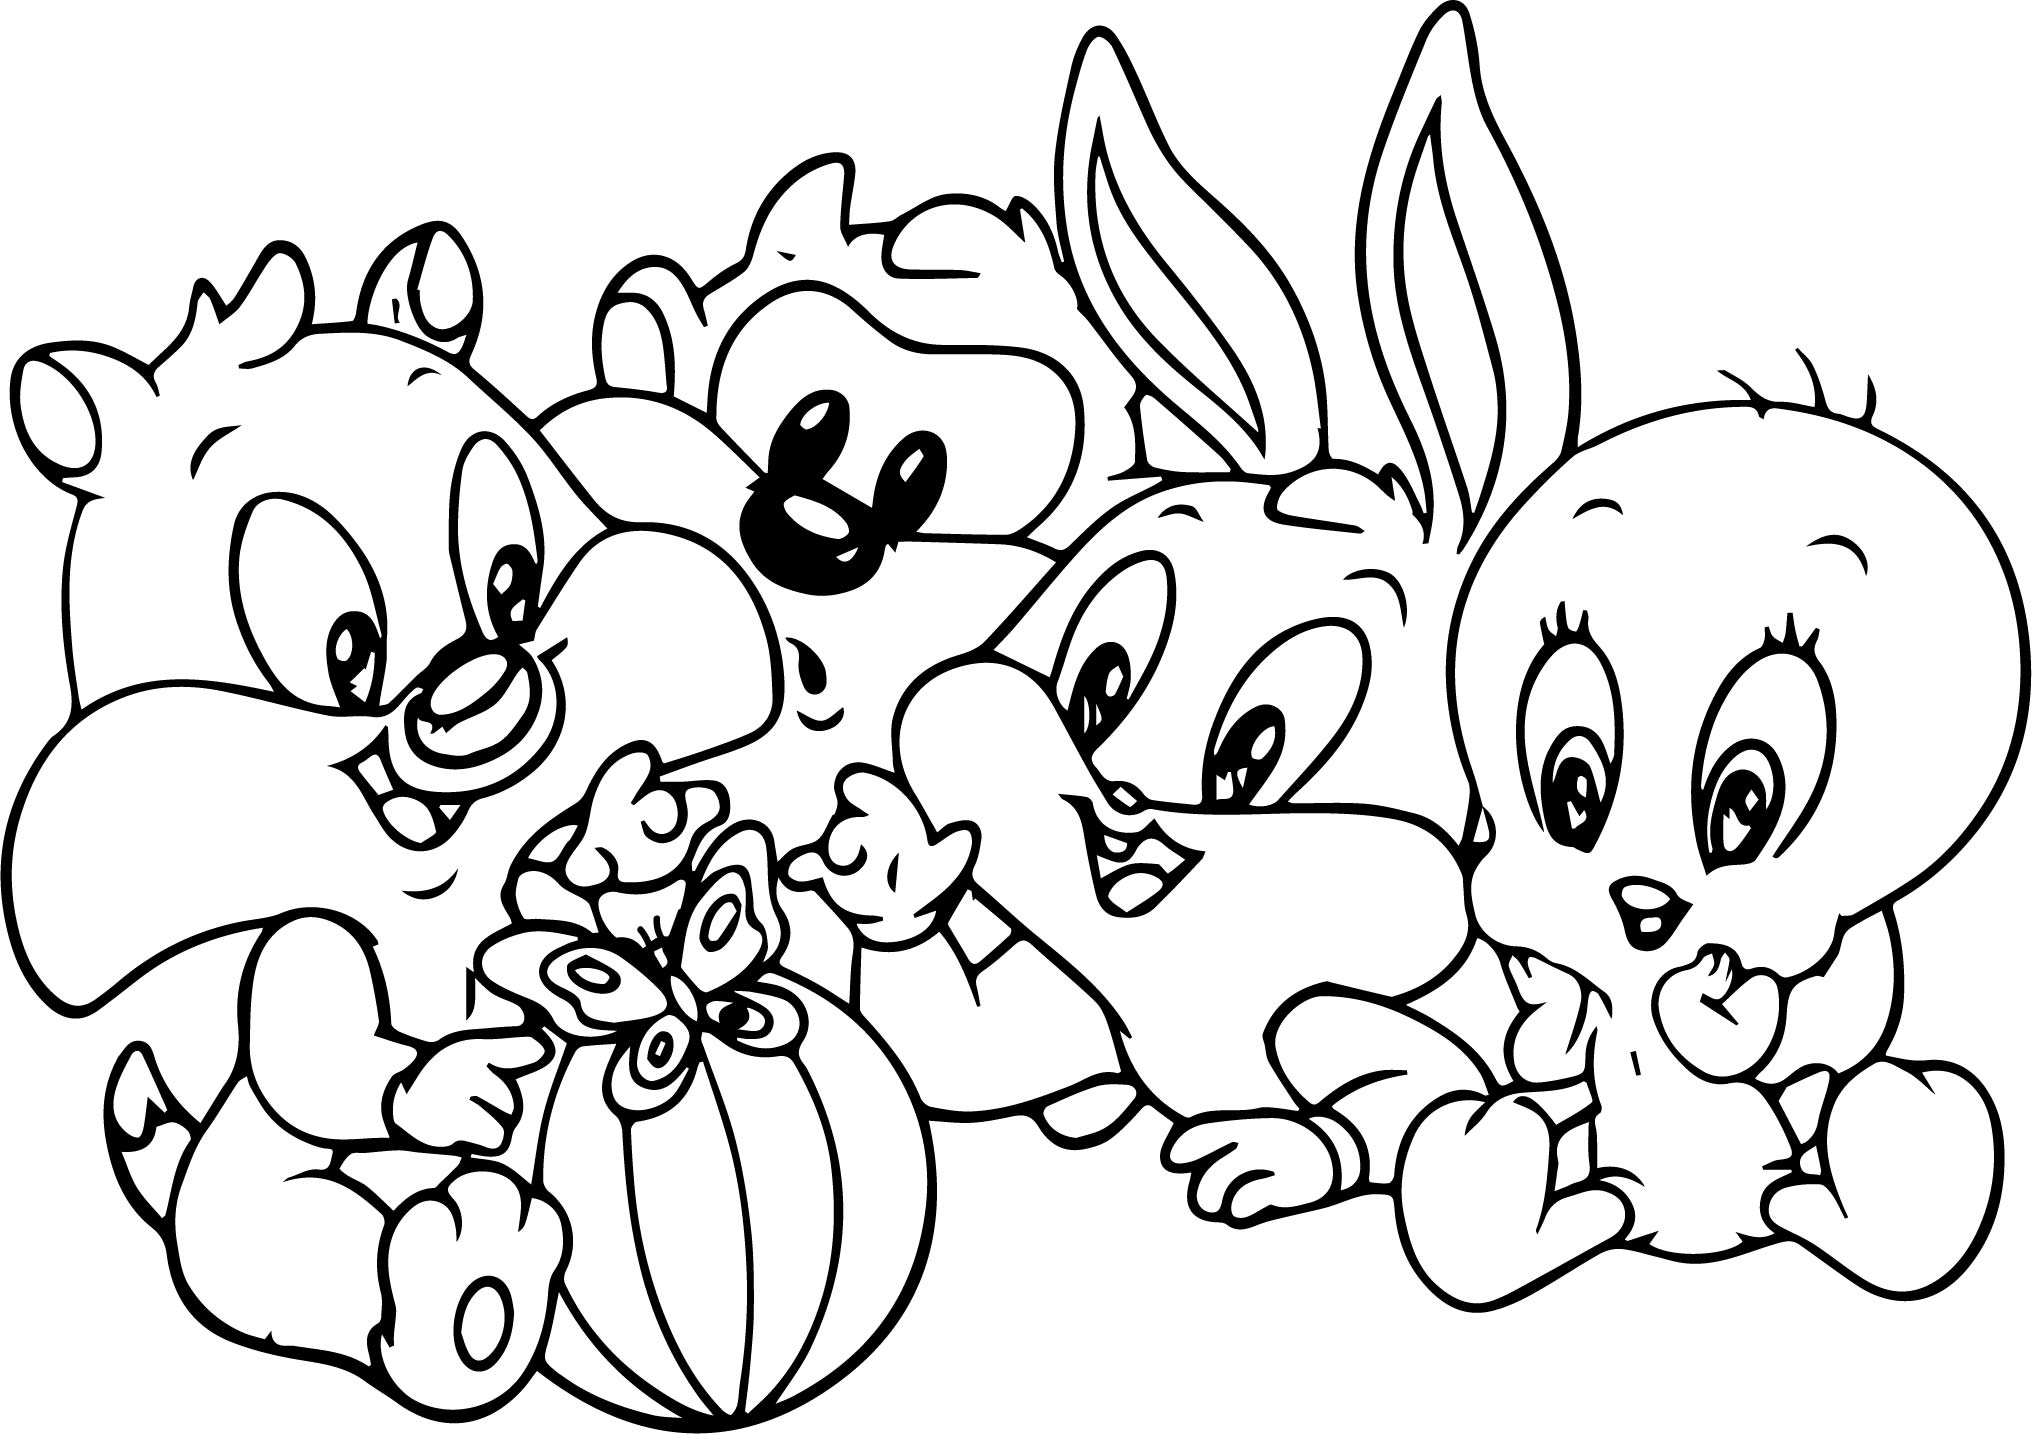 2032x1434 Baby Bugs Bunny Looney Tunes Cartoon Coloring Page Wecoloringpage